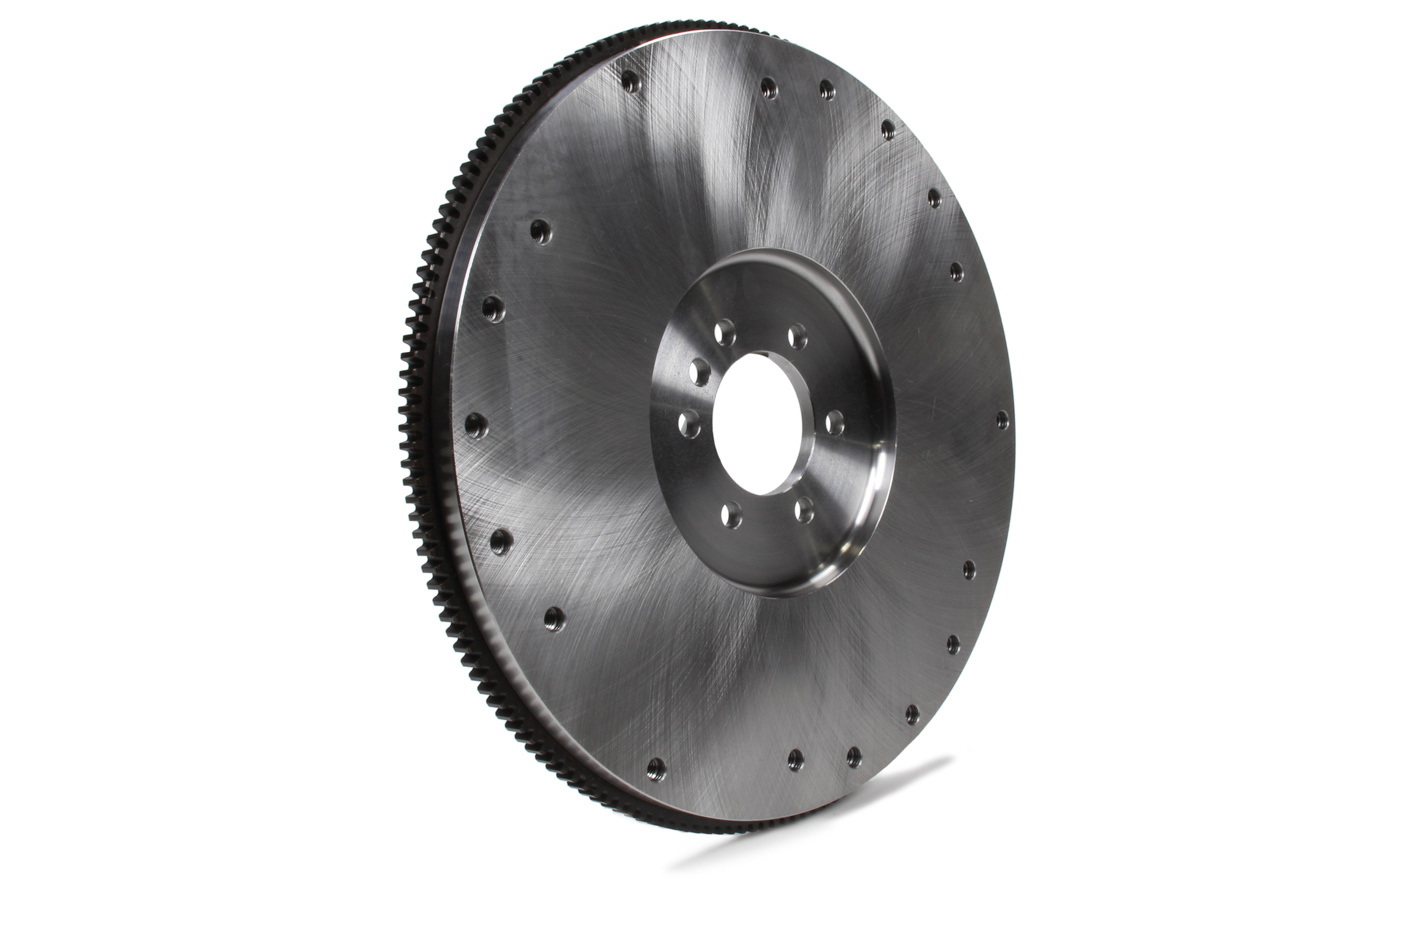 Ram Clutch 1521LW Flywheel, 168 Tooth, 25 lb, SFI 1.1, Steel, Natural, External Balance, Big Block Chevy, Each